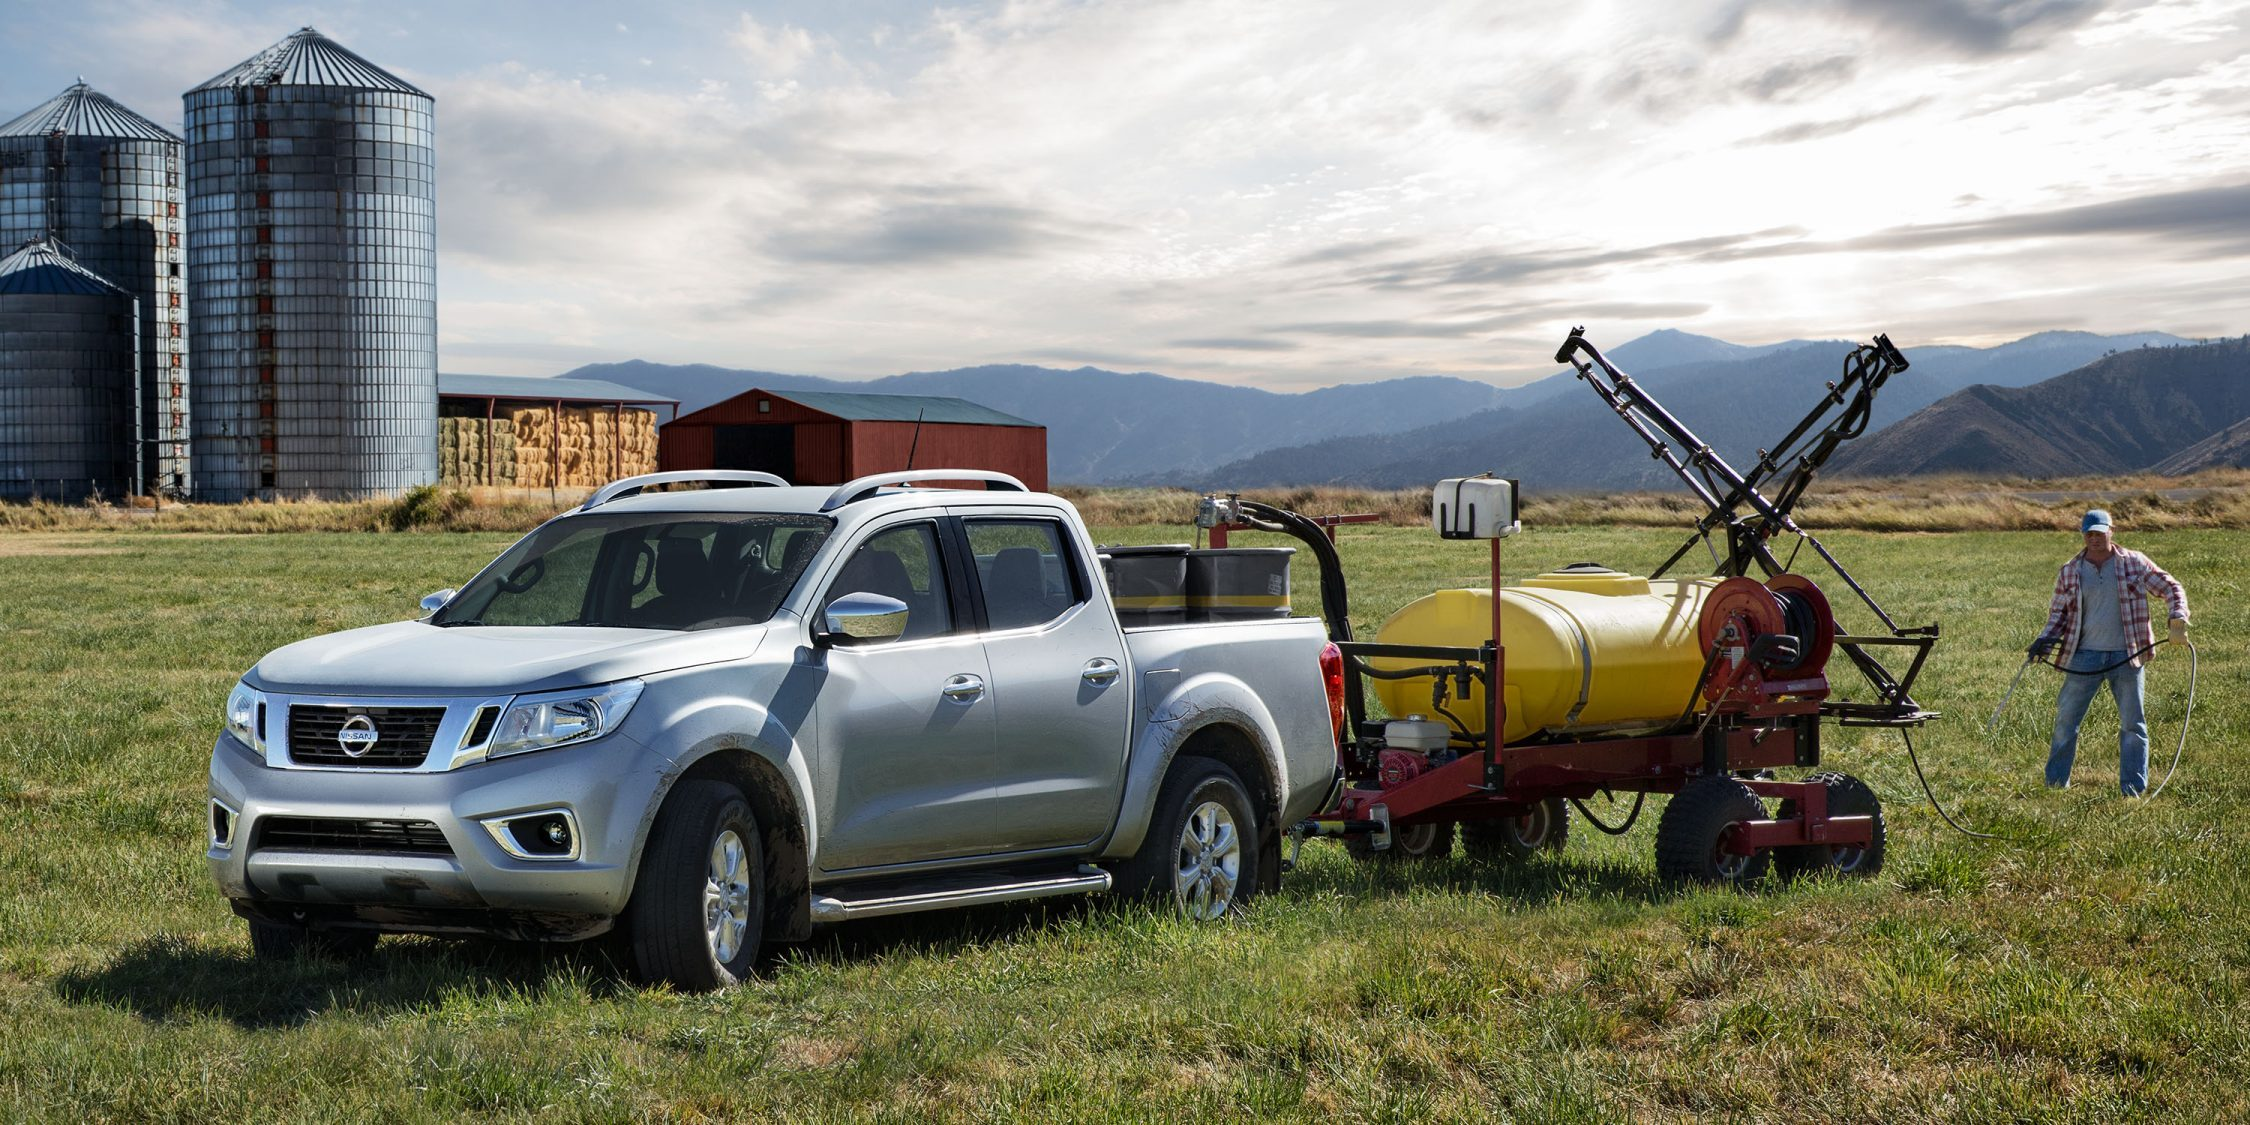 Nissan Navara at work on farm